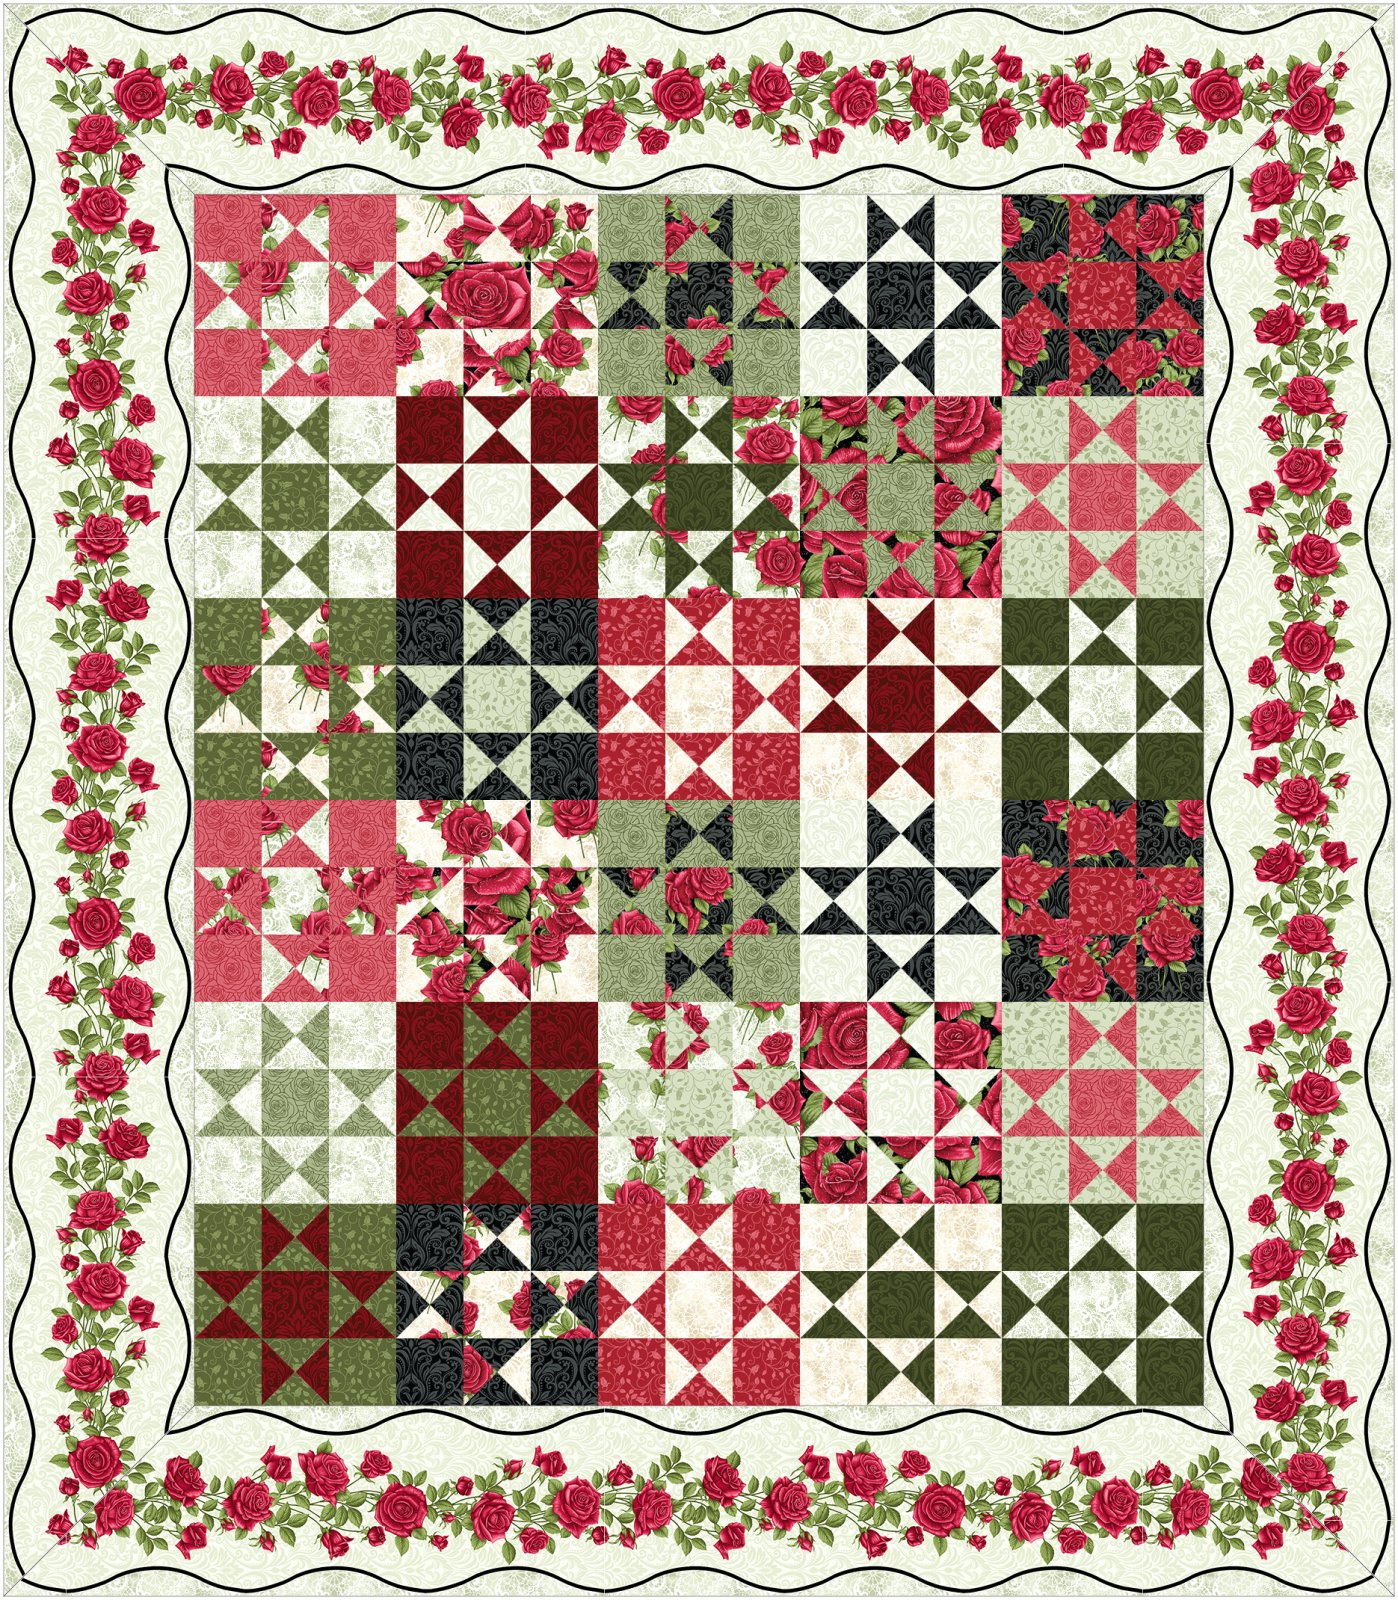 Ohio Star Kit - Light border - by Animas Quilts